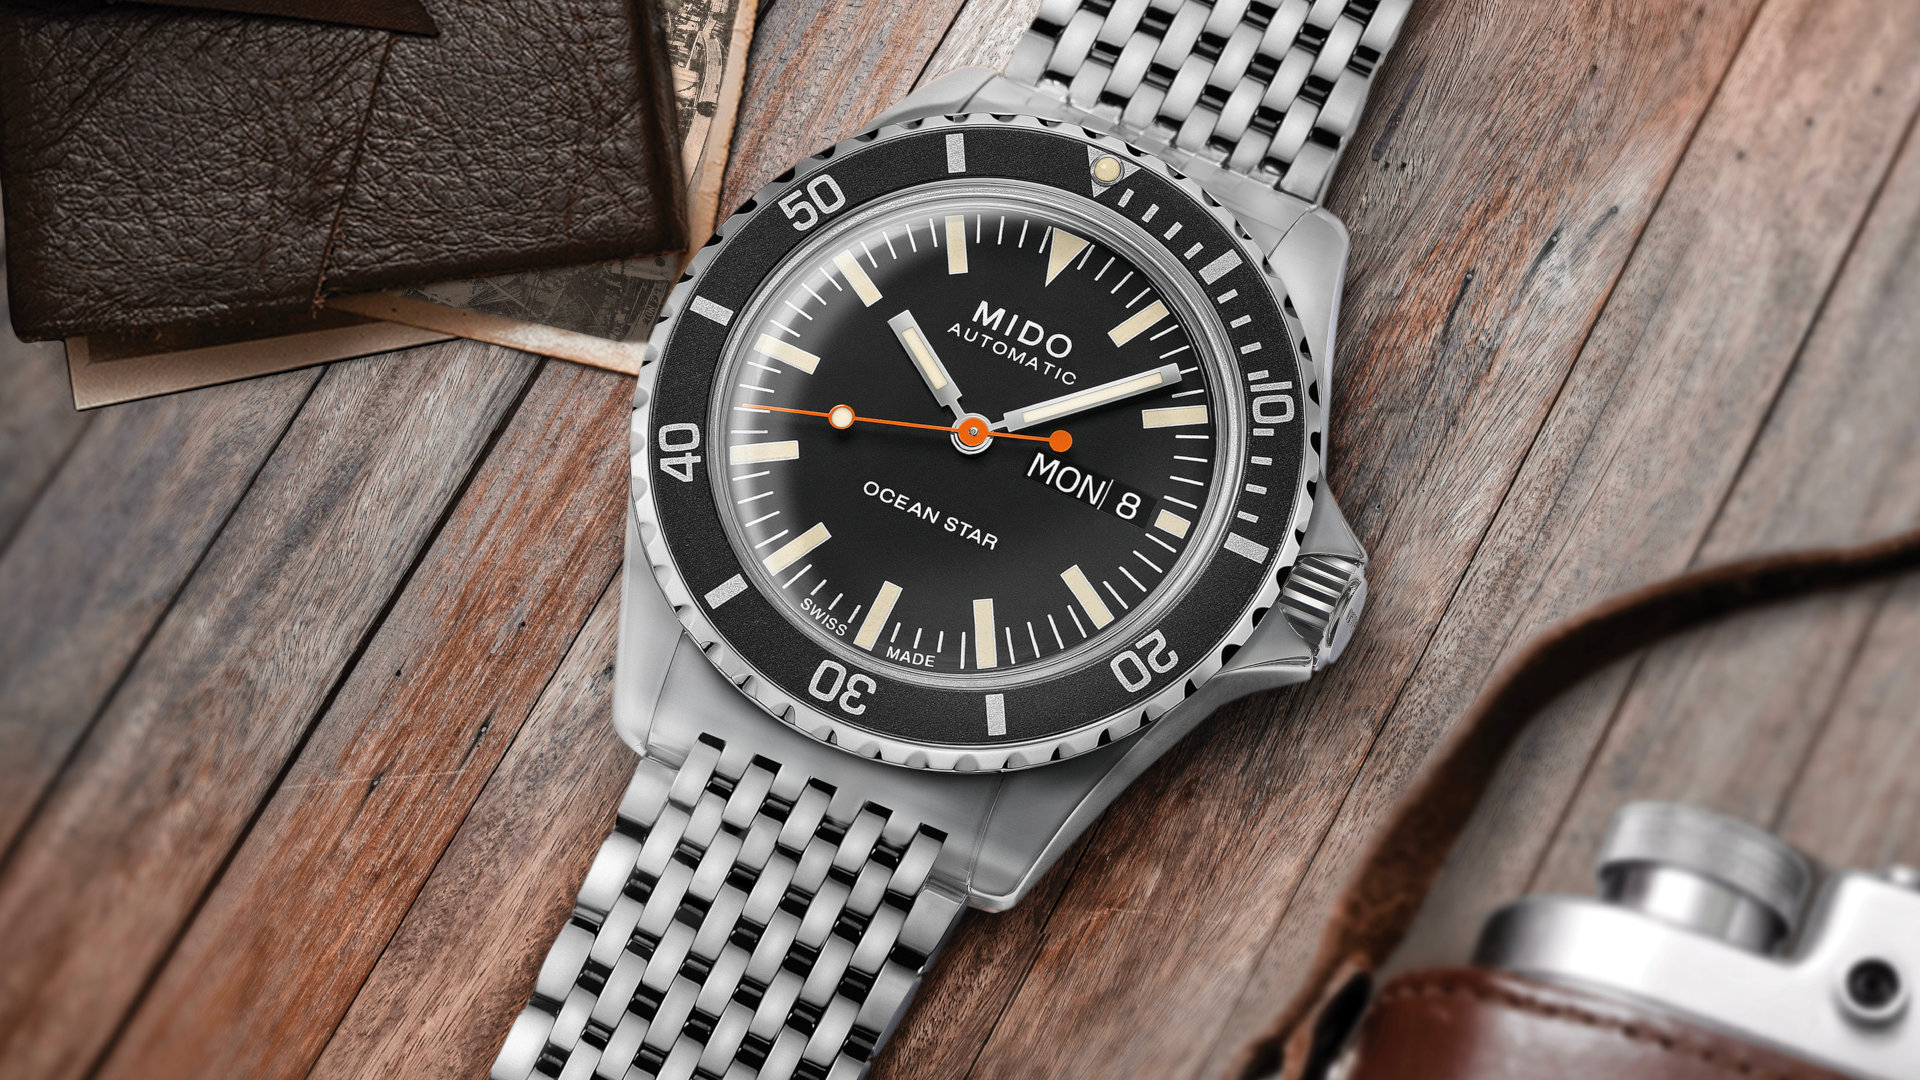 Mido Ocean Star Tribute: A stellar 1960s inspired dive watch